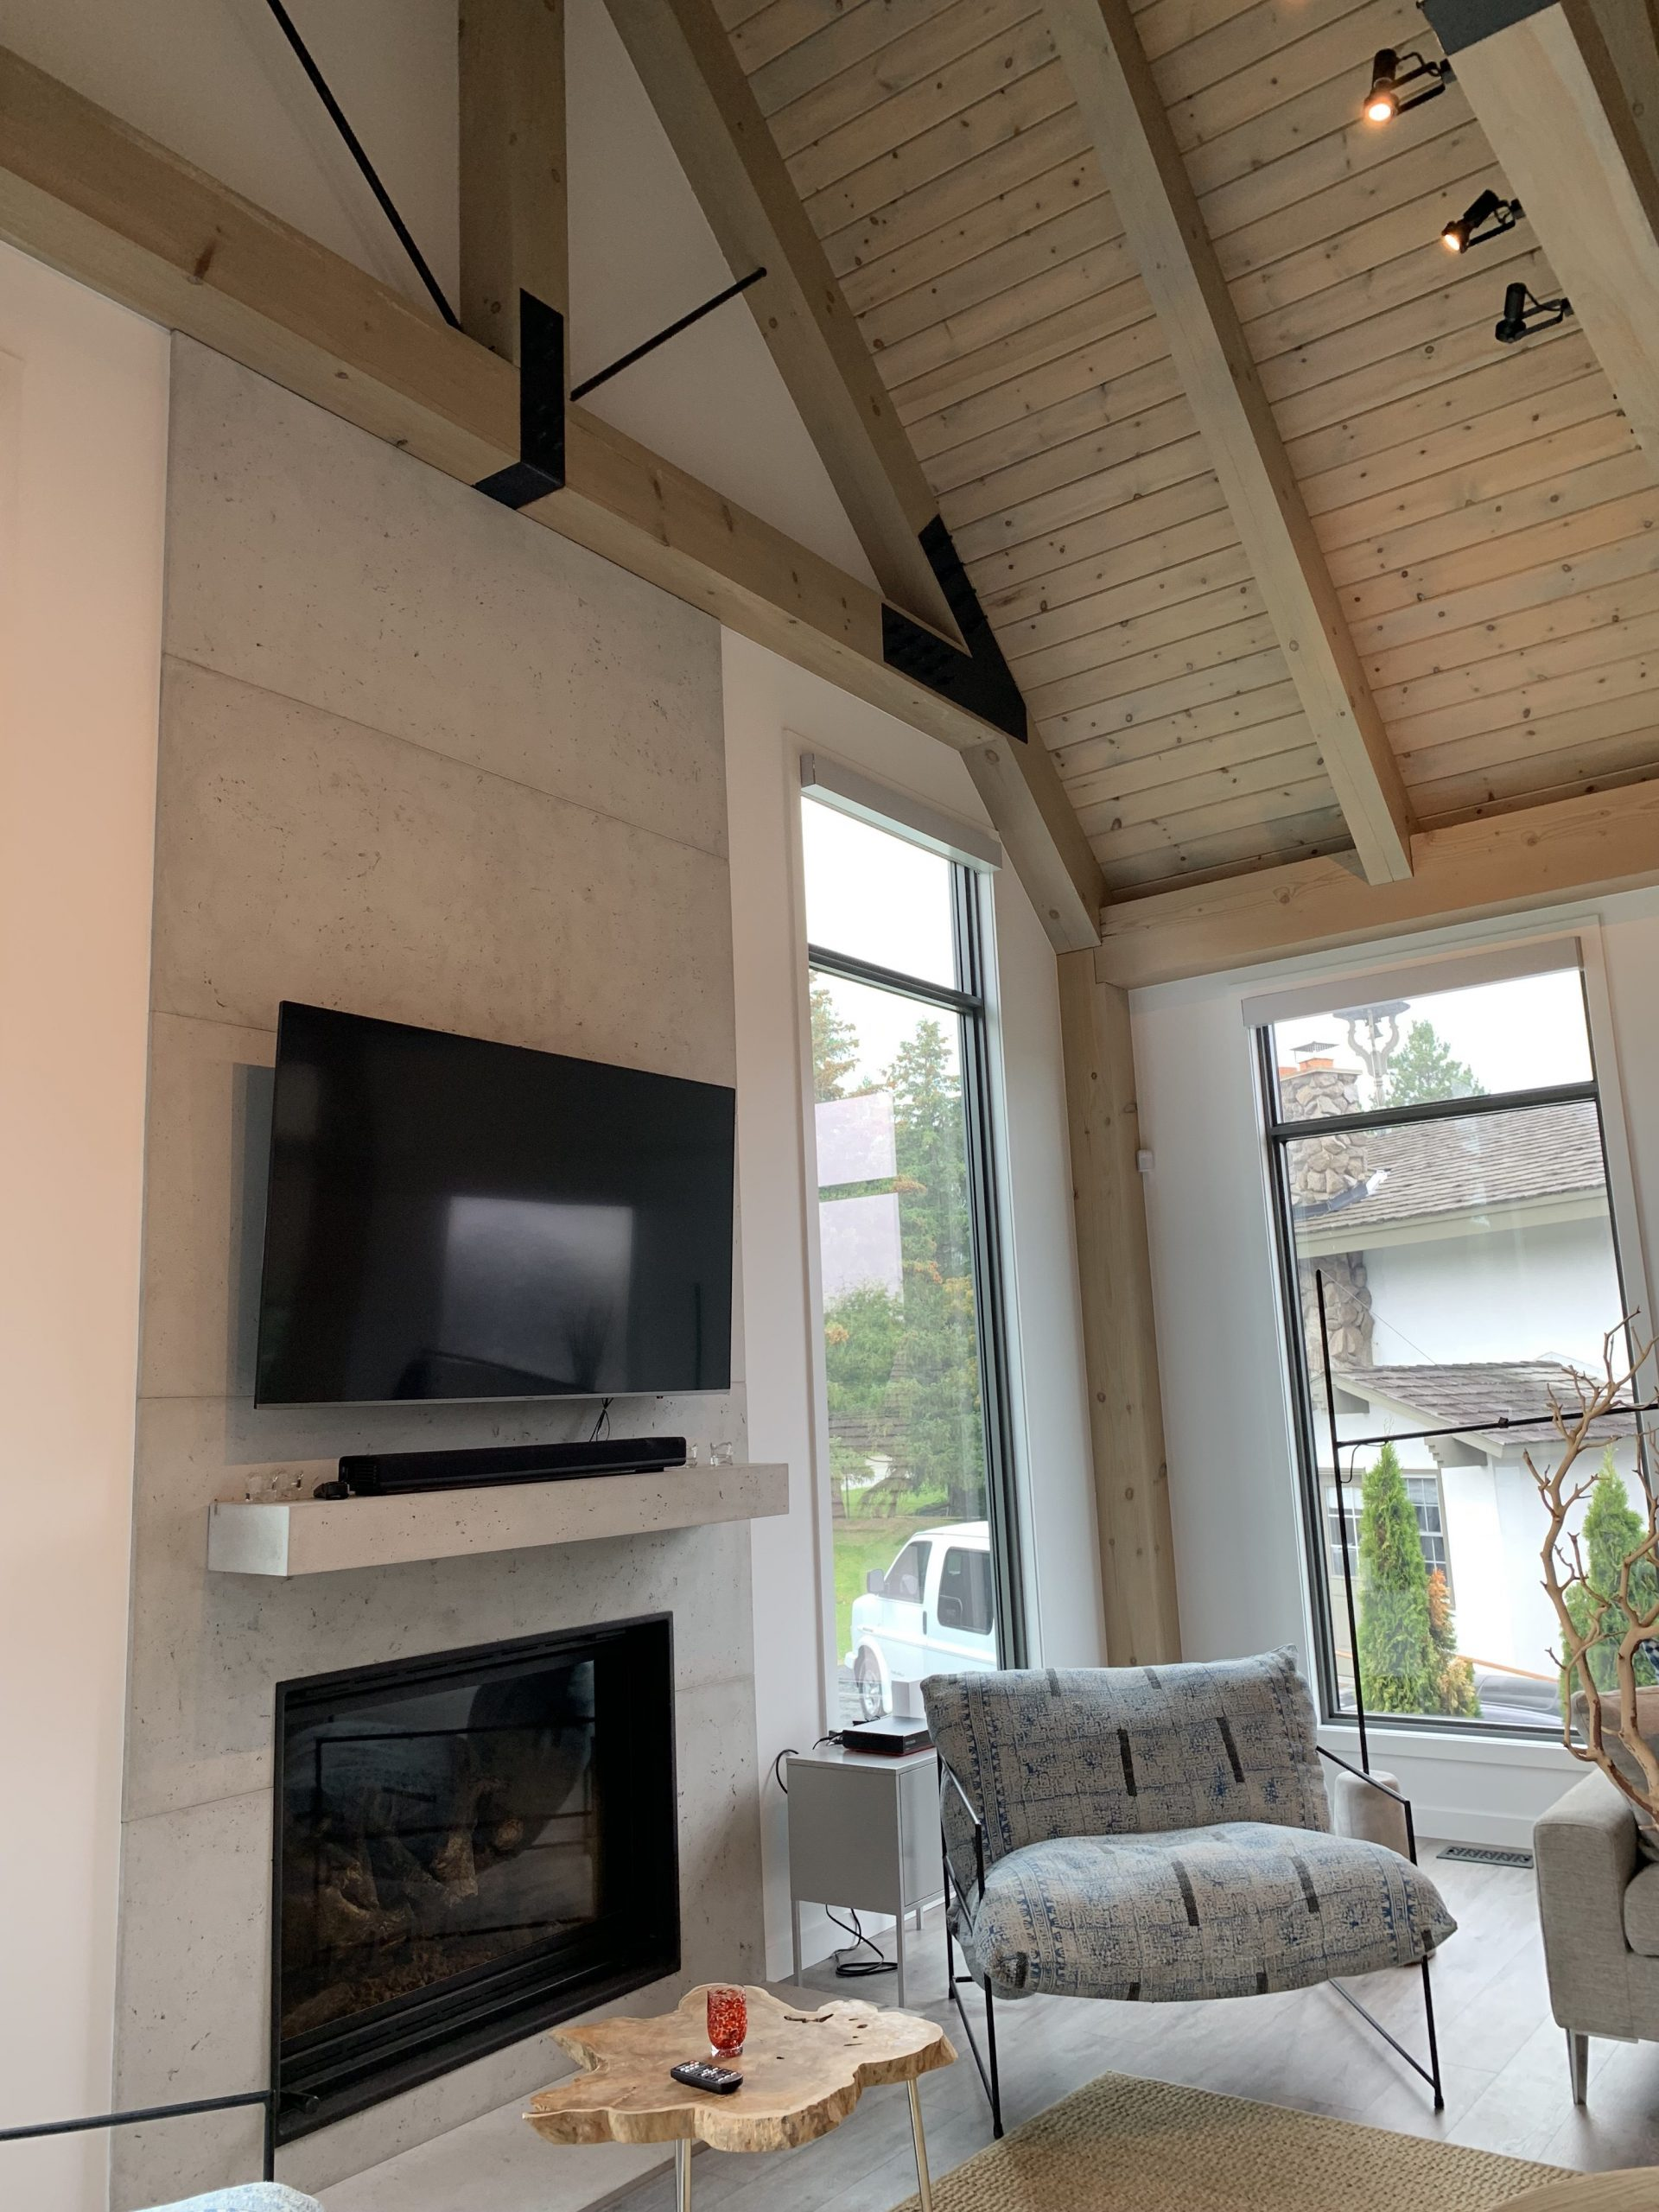 Normerica Timber Frame, Interior, Fireplace, Modern, Contemporary, Cathedral Ceiling